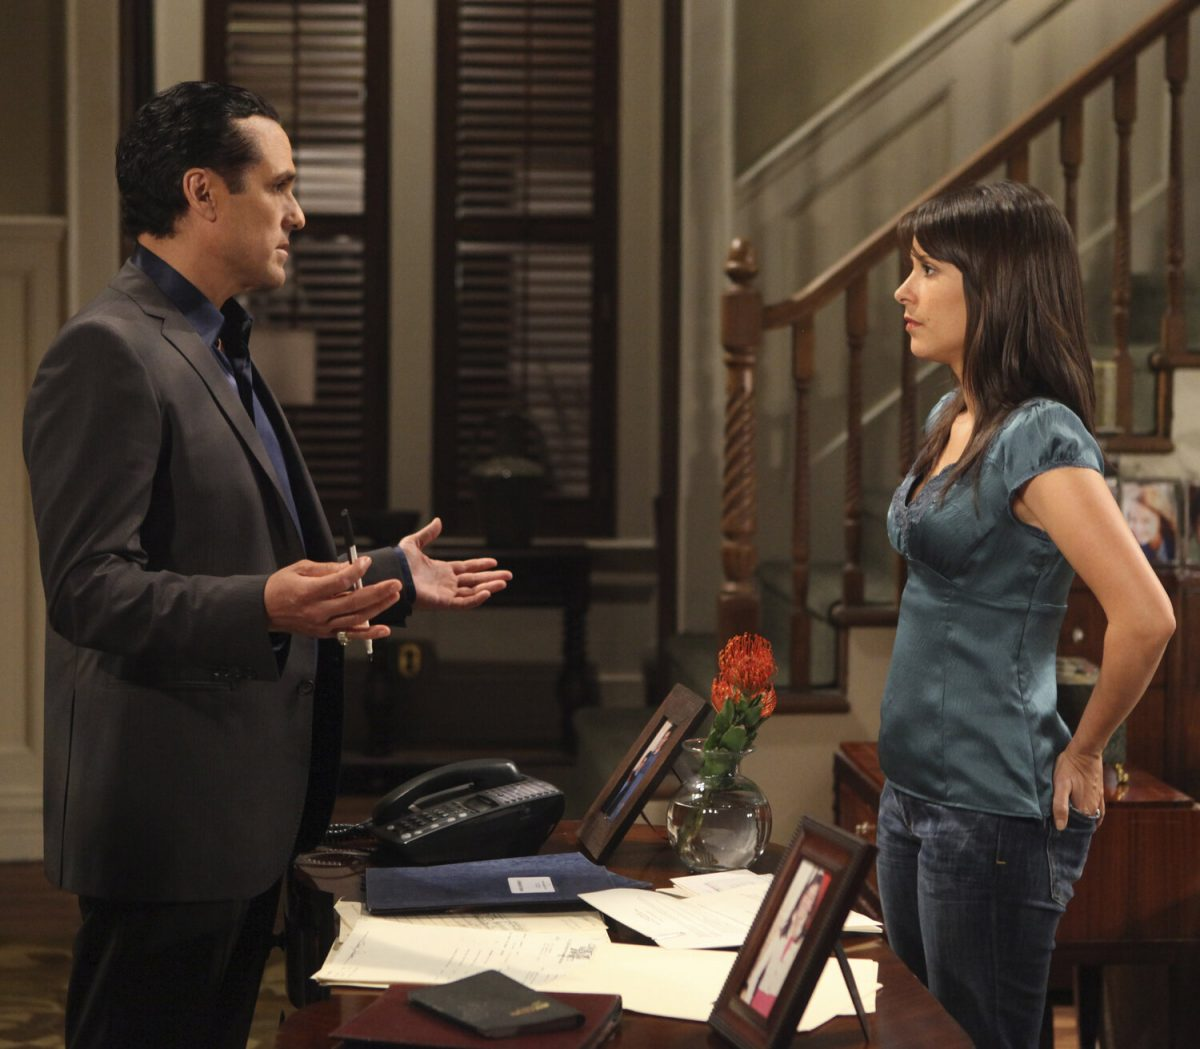 Maurice Benard (Sonny) and Kimberly McCullough (Robin) in a 'General Hospital' scene that aired the week of May 24, 2010.